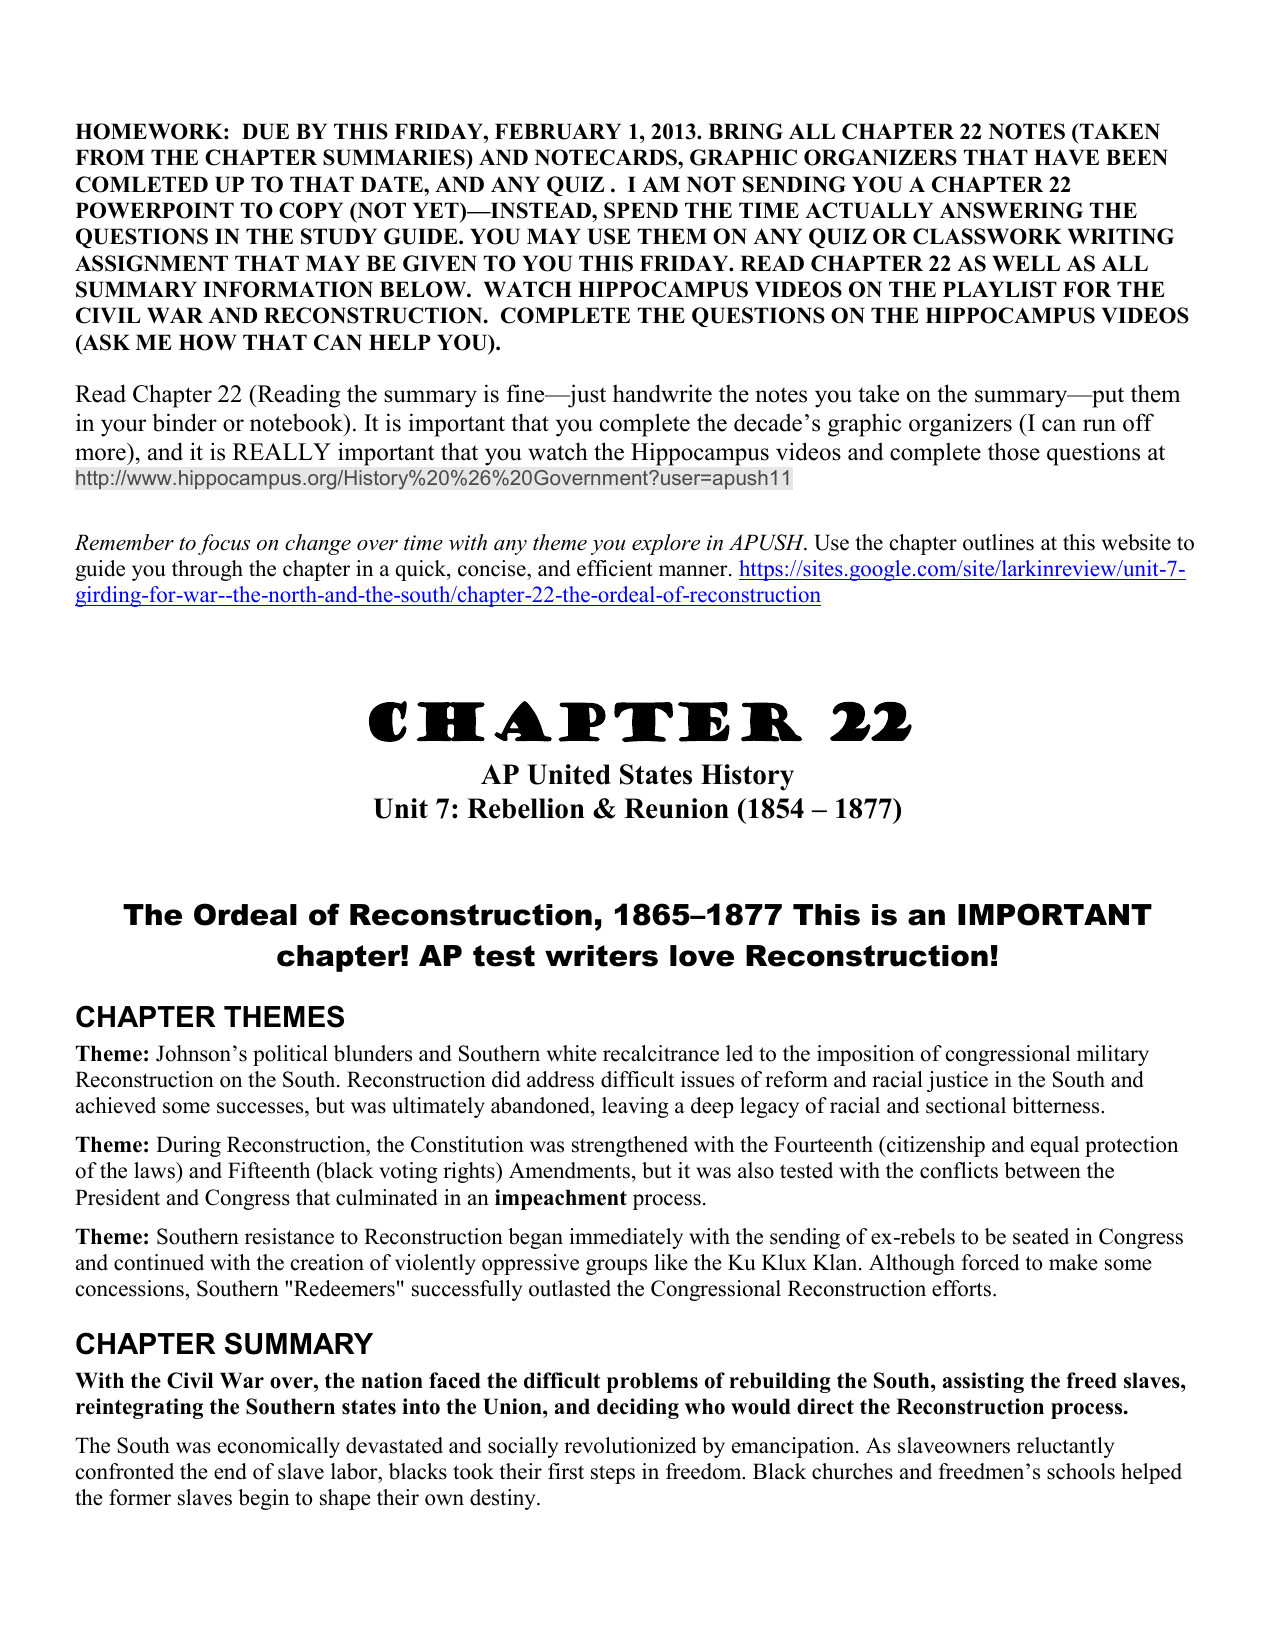 Chapter 22 Study Guide AP US